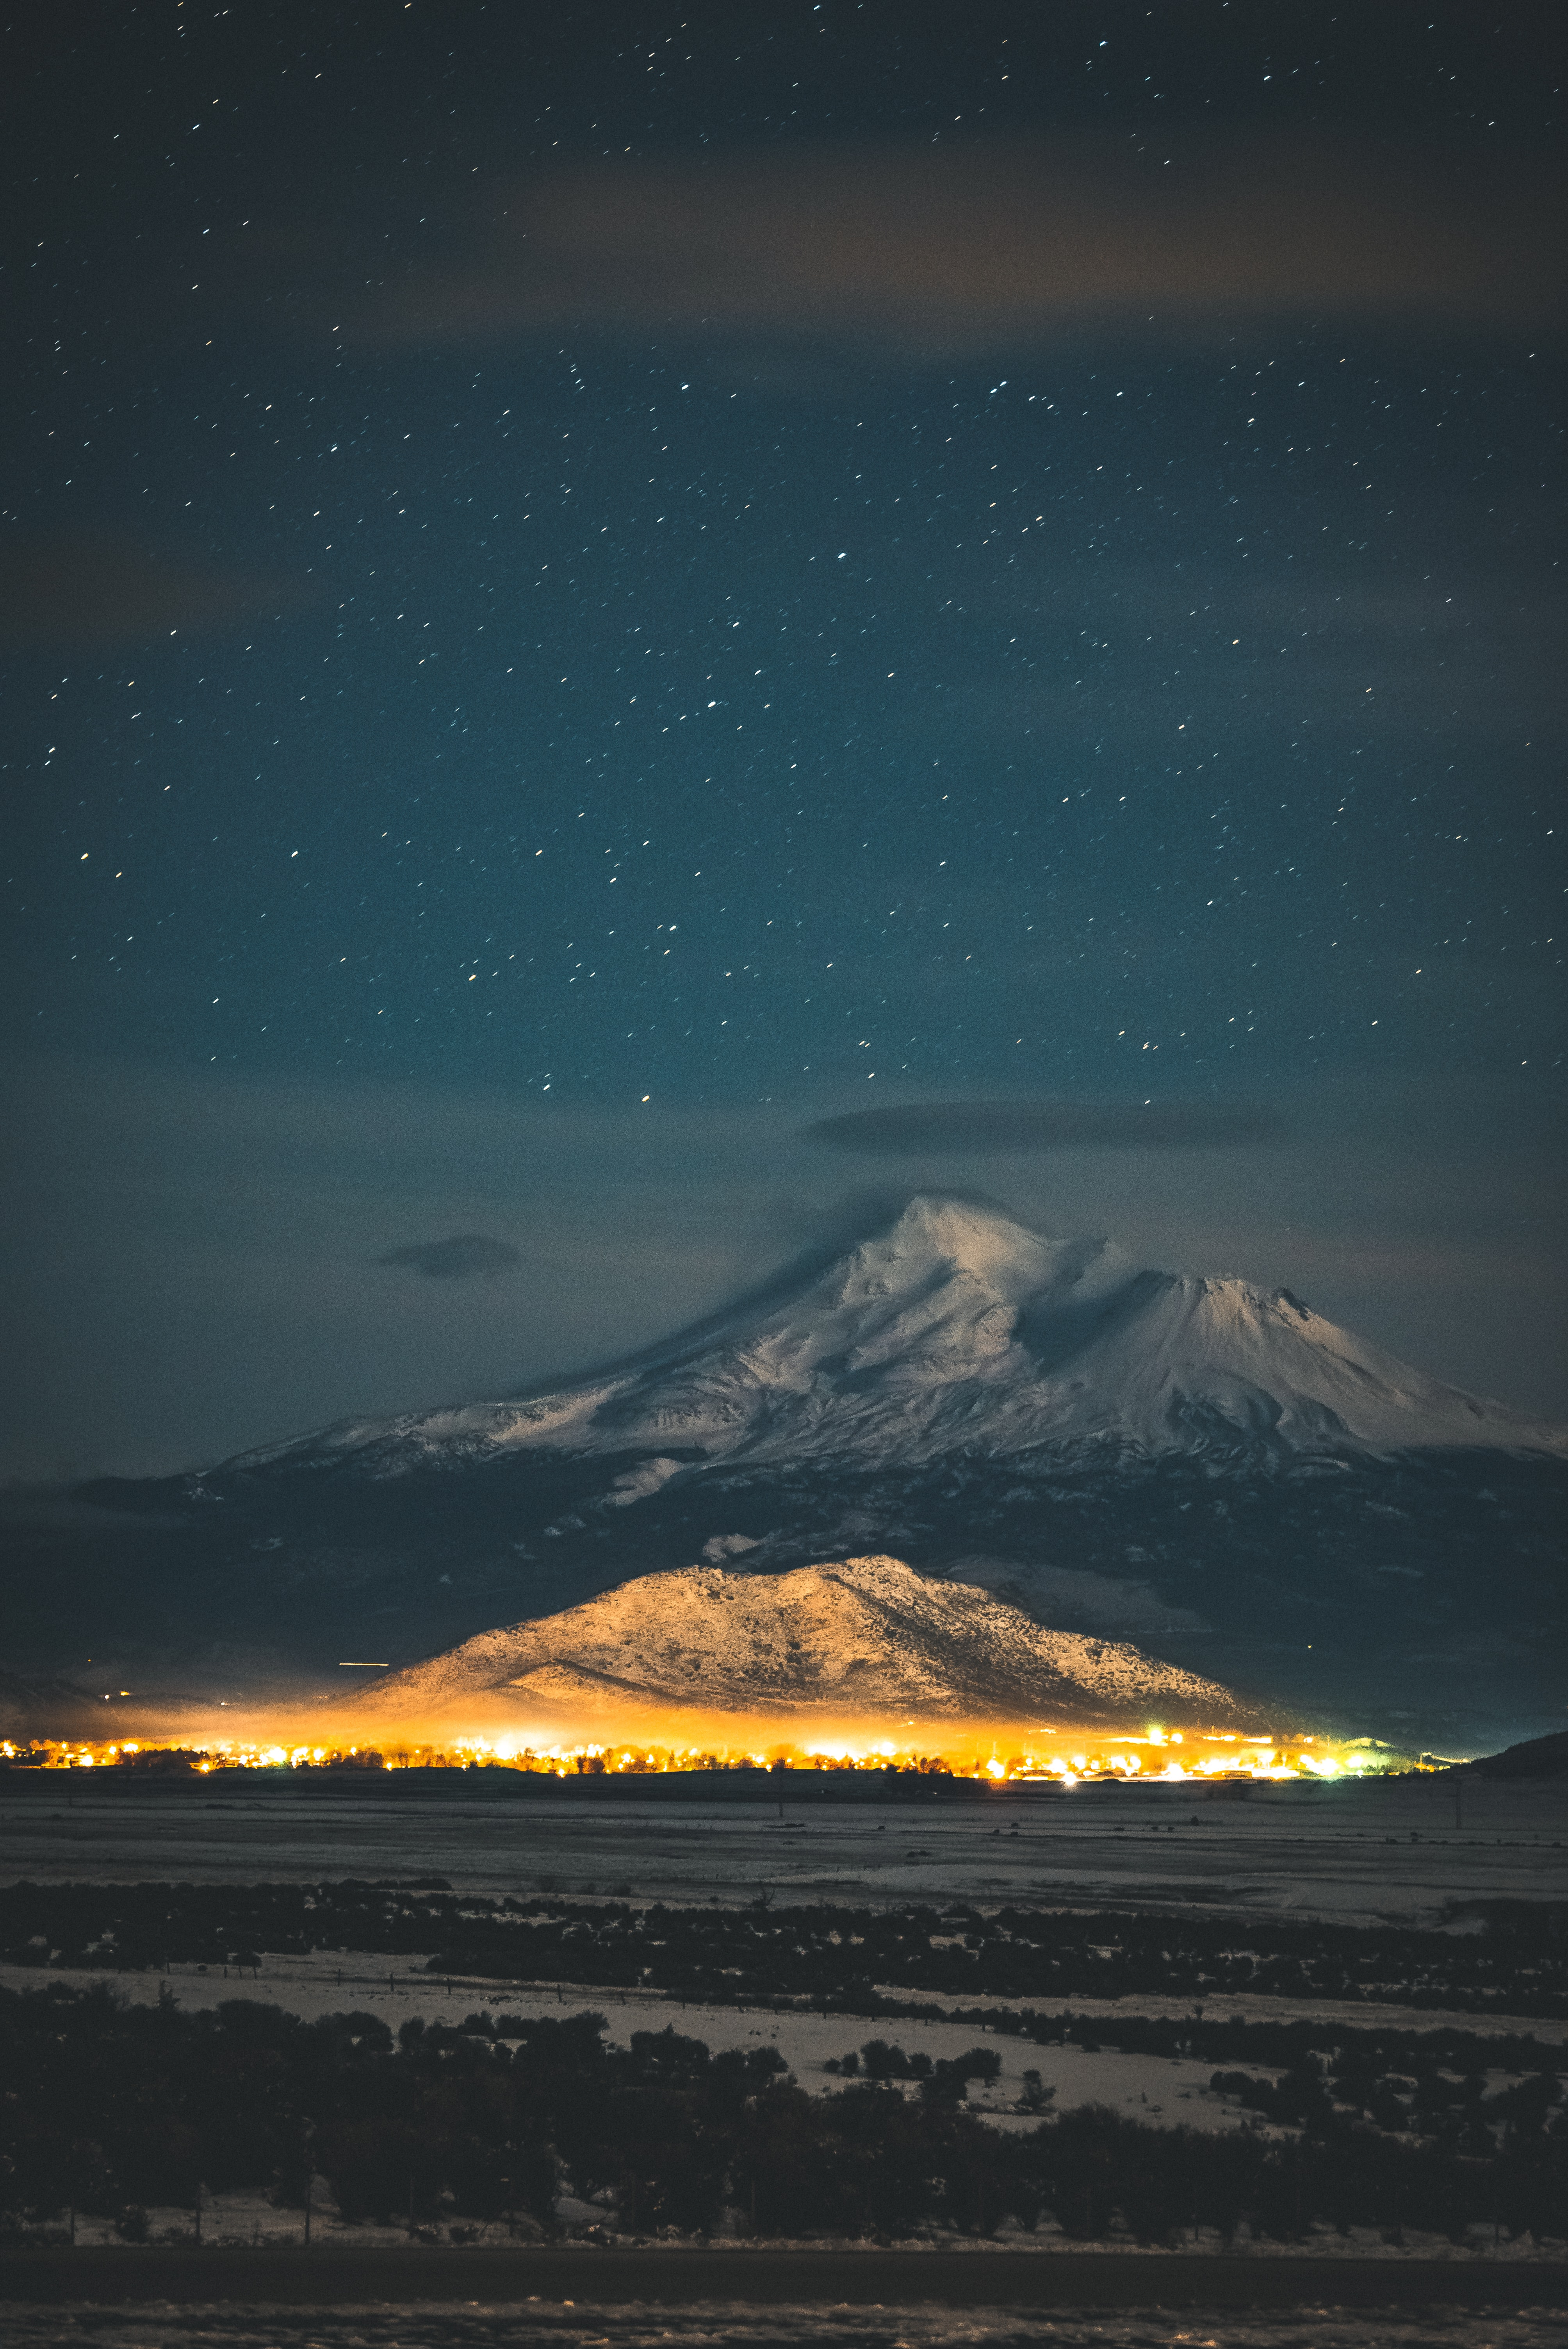 yellow lighted mountain